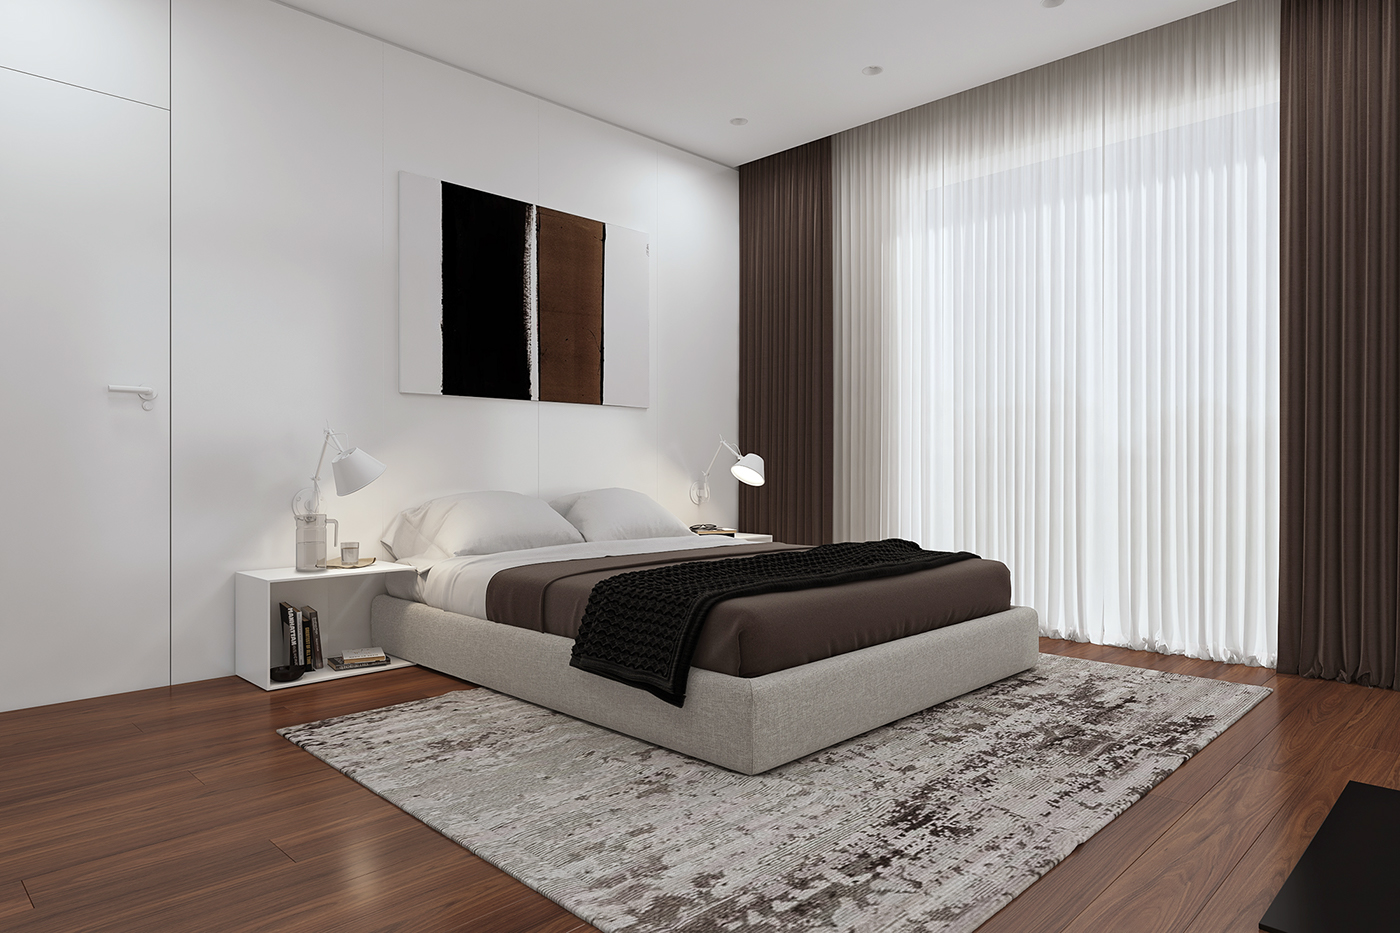 apartment-bedroom-designs.jpg